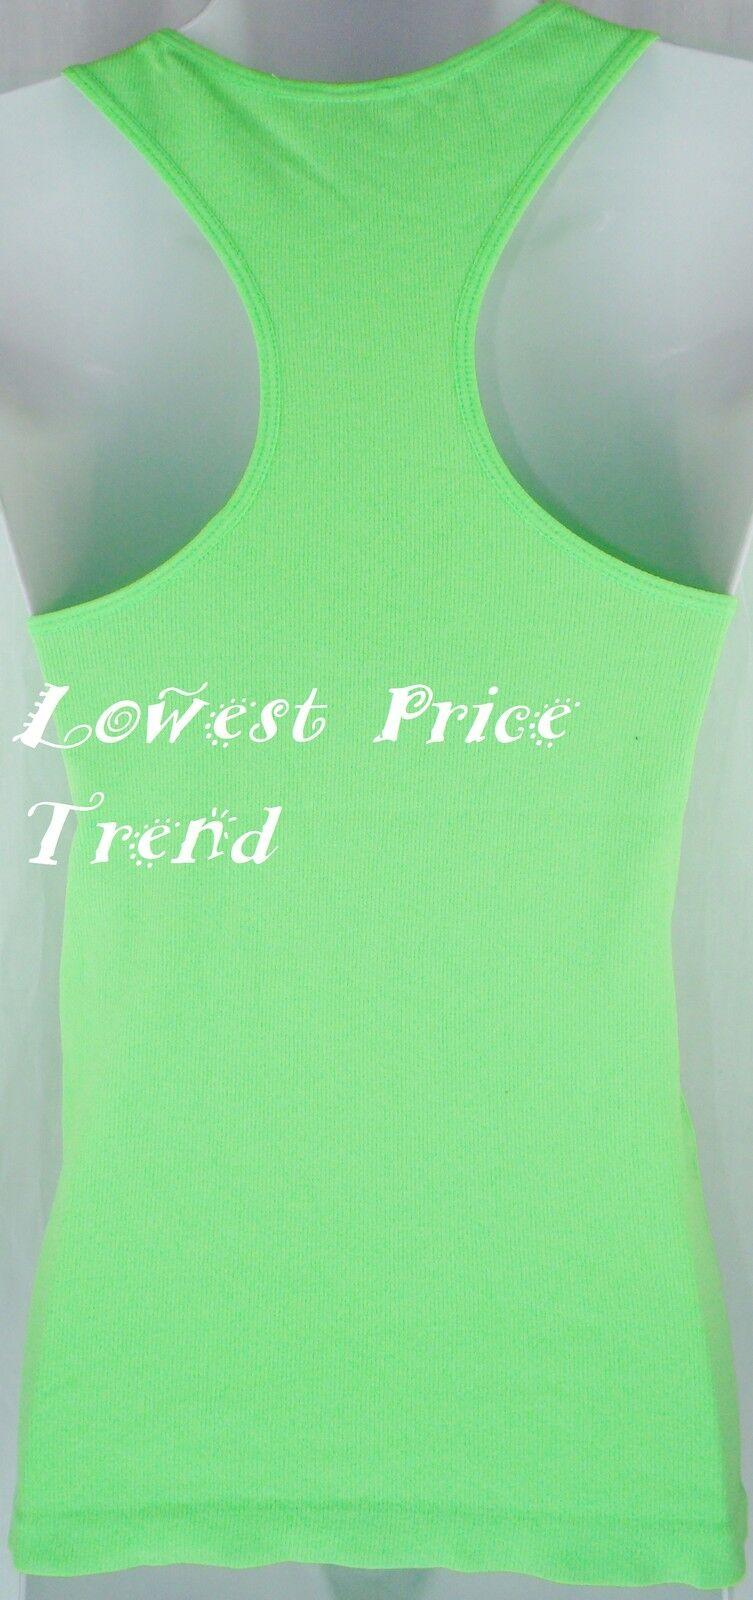 Women's Racerback Tank Top 92% Polyester Basic Solid Hot Tee Cami NEW TT400